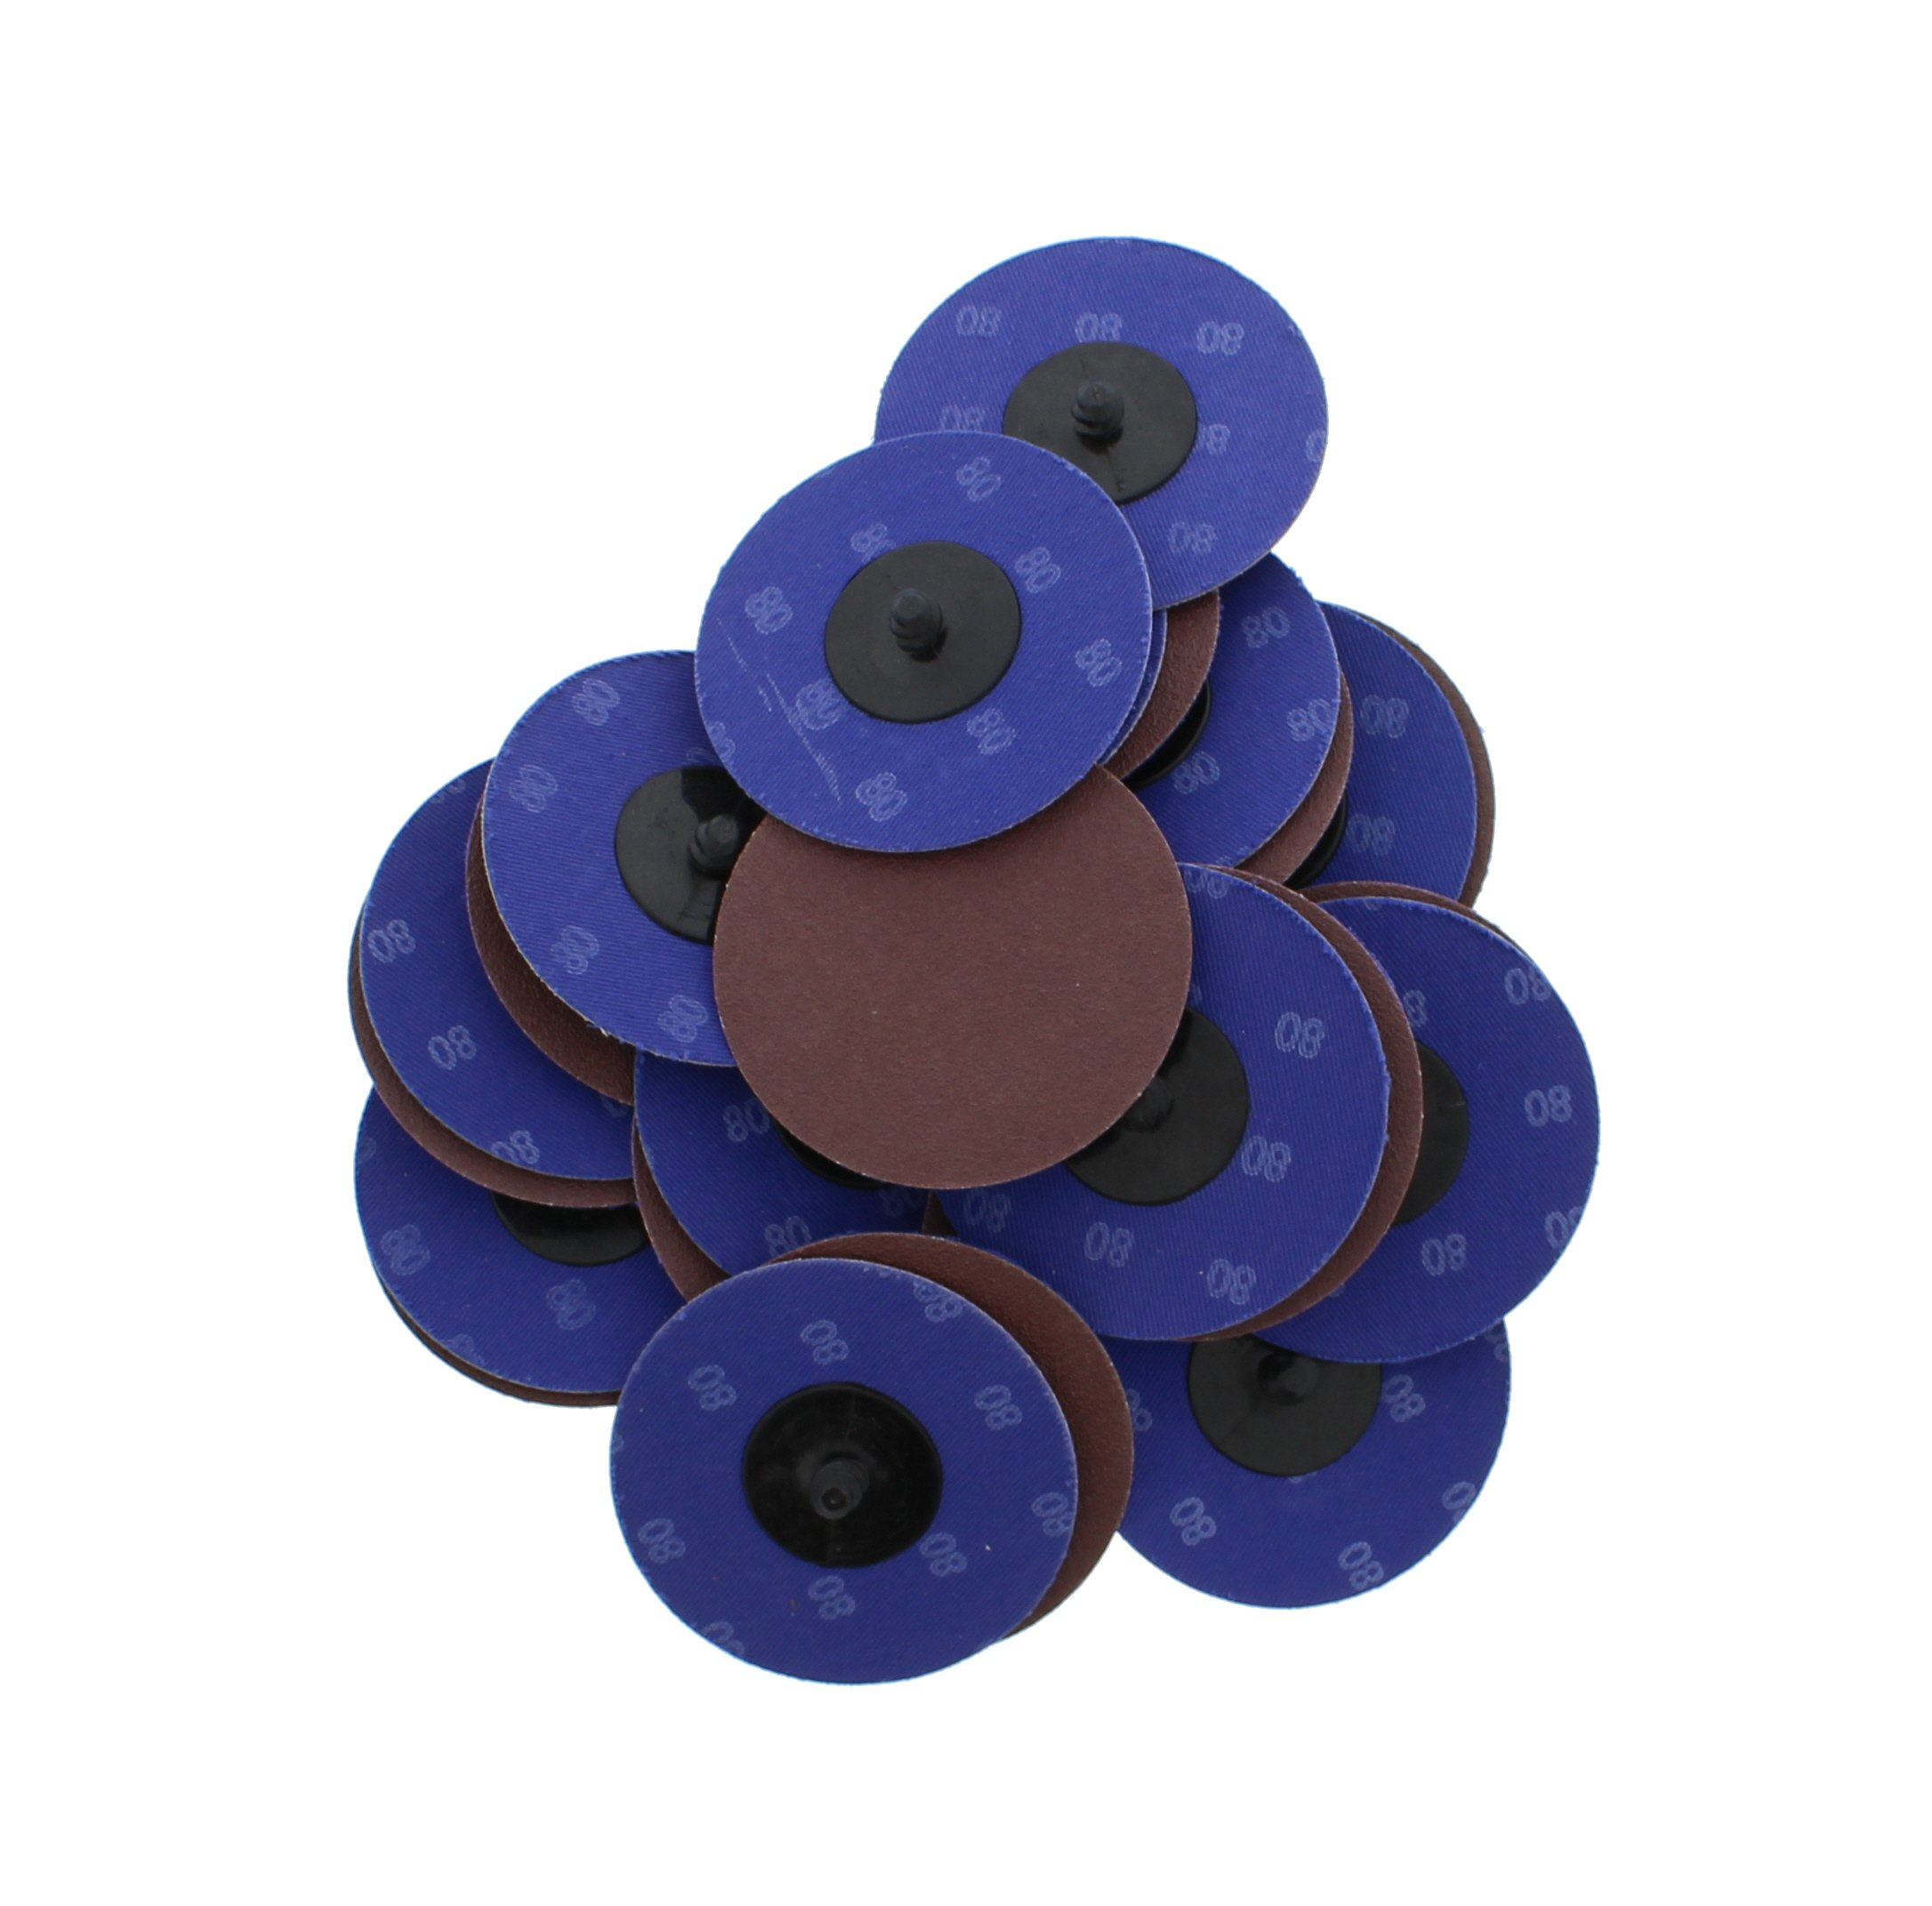 "ABN Aluminum Oxide Sanding Discs 25-Pack, 3"" Inch, 80 Grit - Metal Sanding Wheels for Surface Prep and Finishing Work"